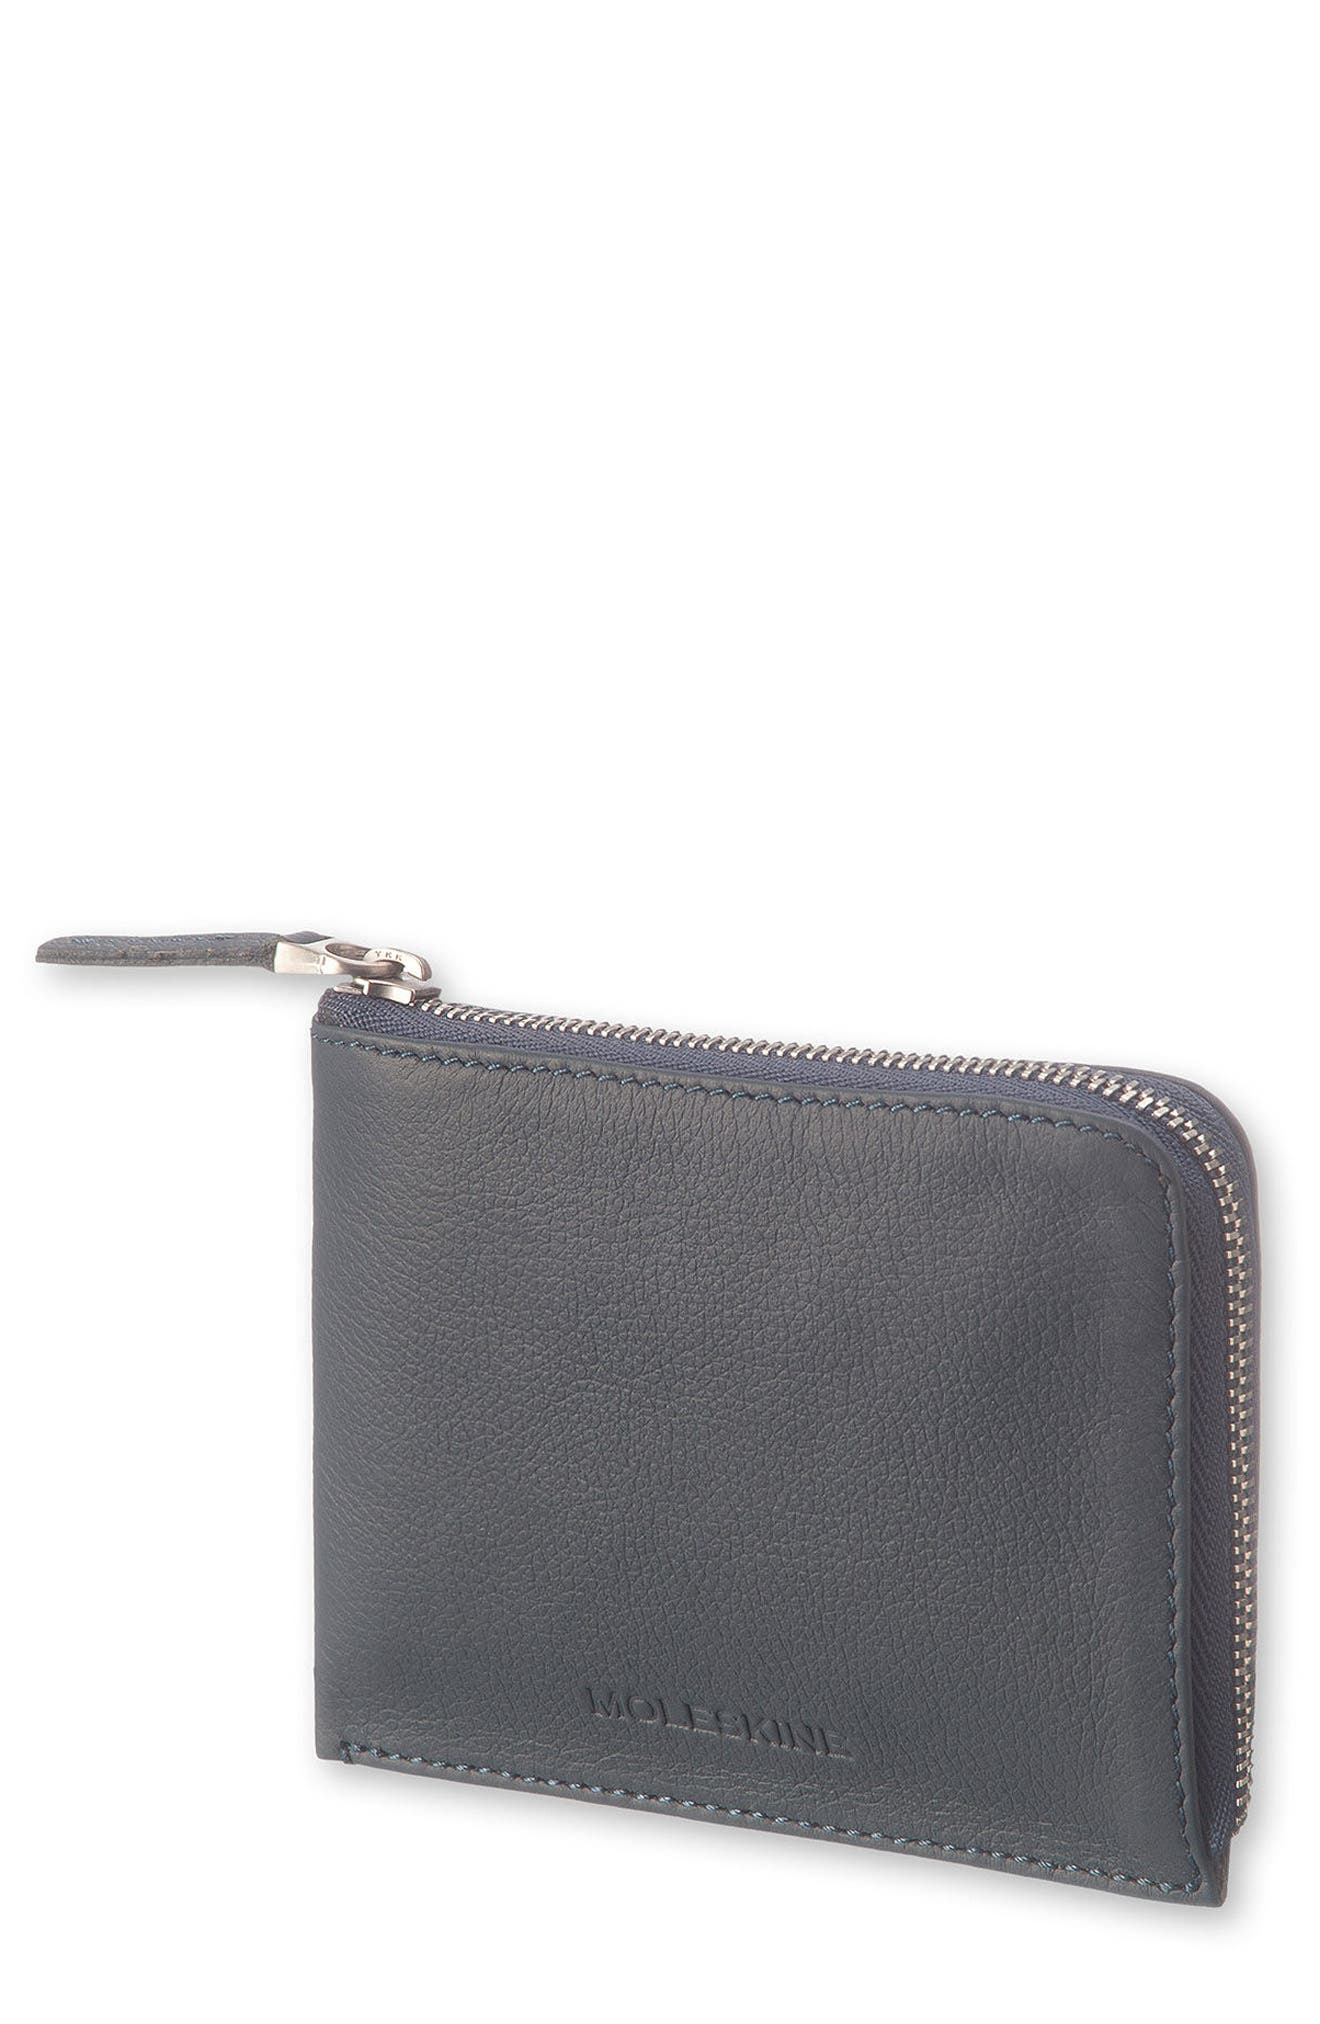 Lineage Leather Zip Wallet,                         Main,                         color, AVIO BLUE